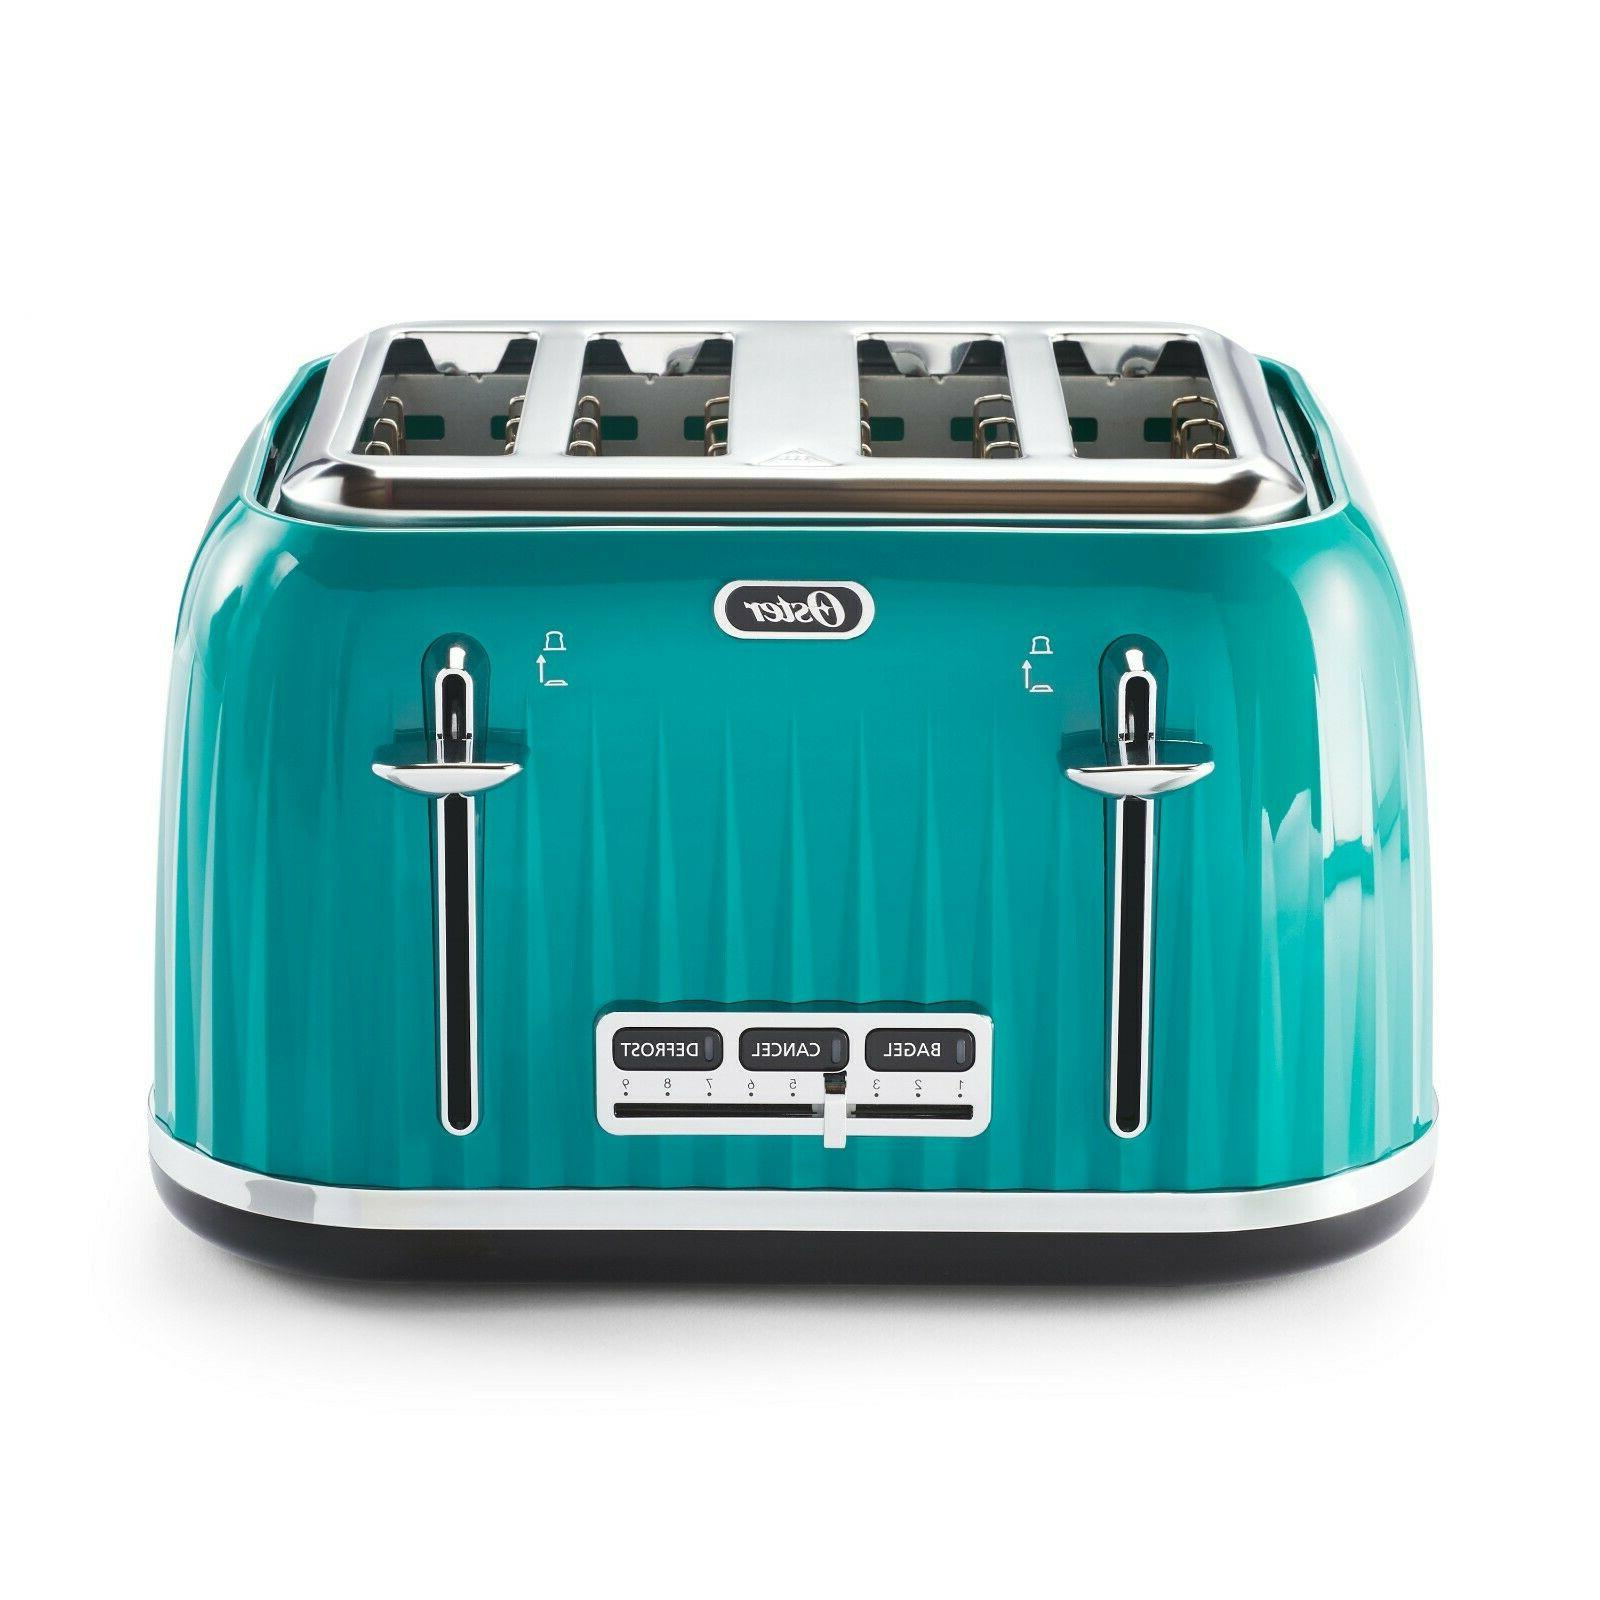 4 slice teal with chrome accents toaster